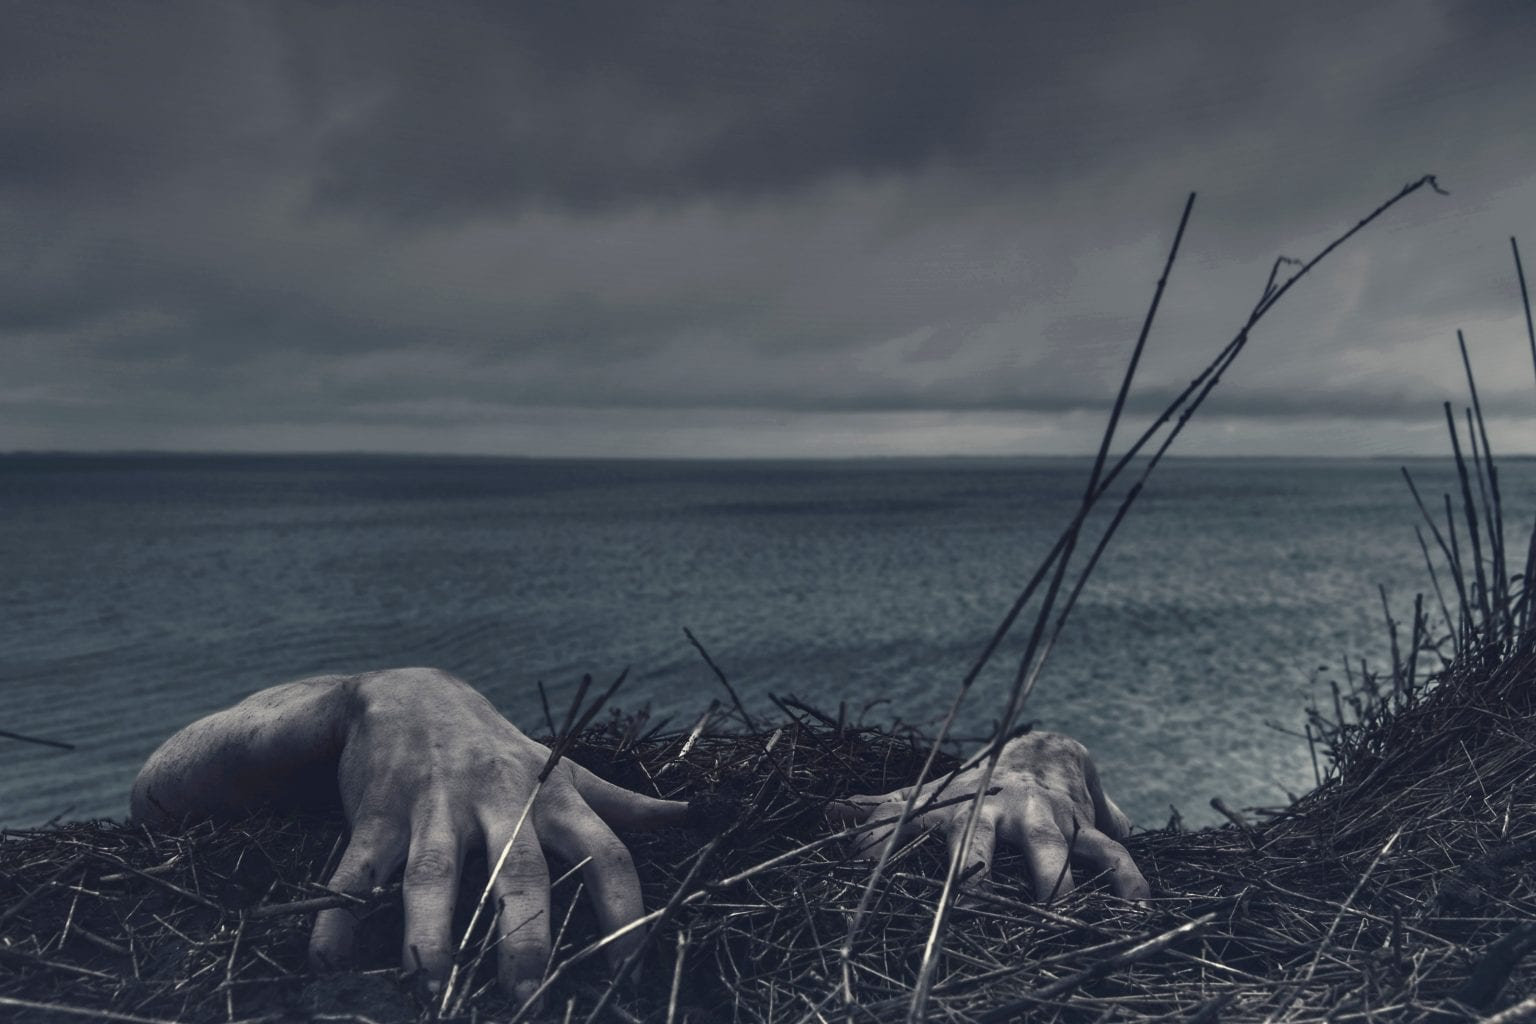 creepy zombie hands crawling up a verge